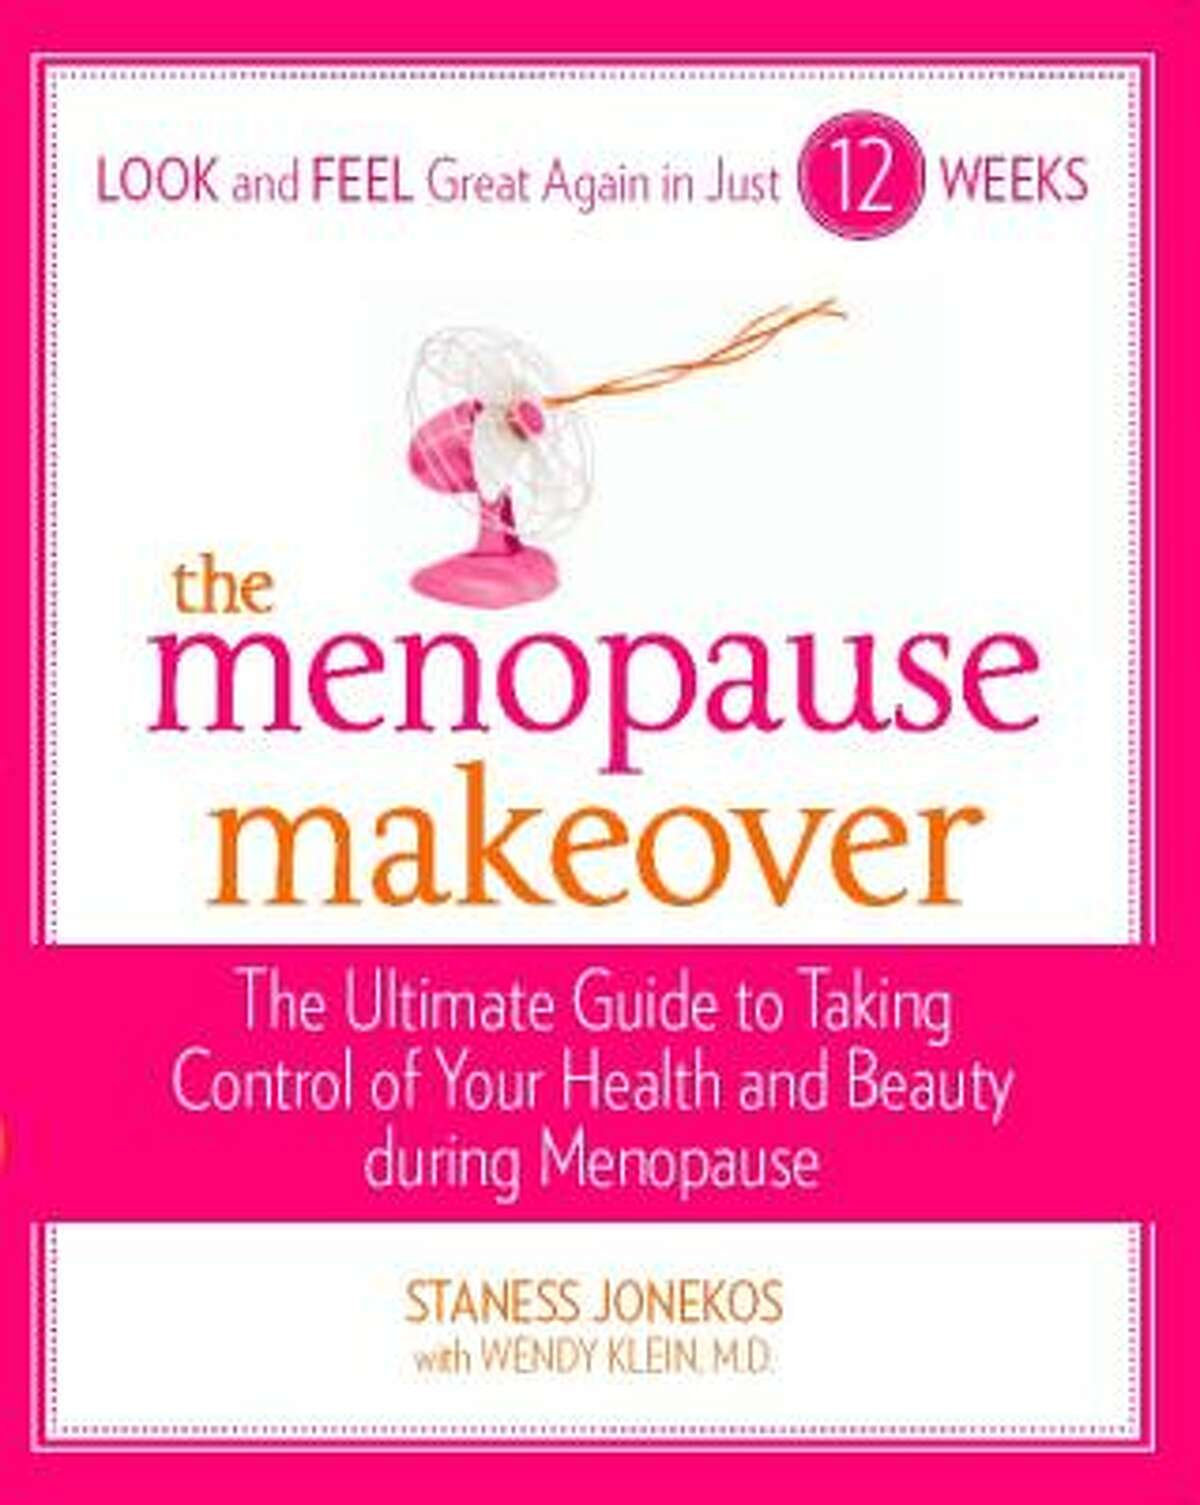 Jonekos is co-author of The Menopause Makeover, a 12-week program.